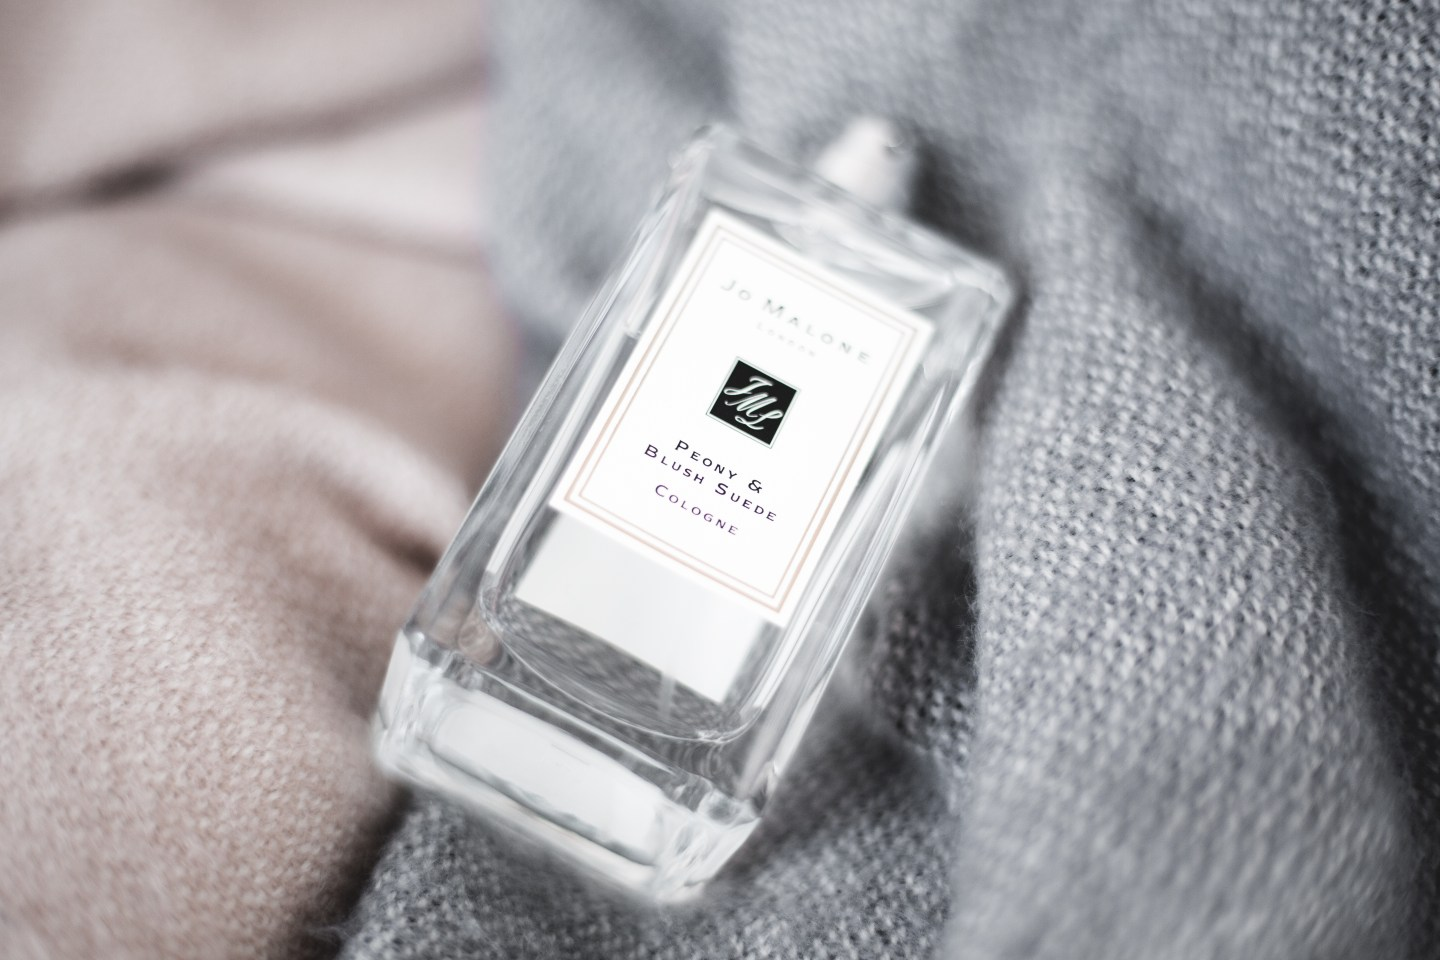 Jo Malone | Peony and Blush Suede Cologne